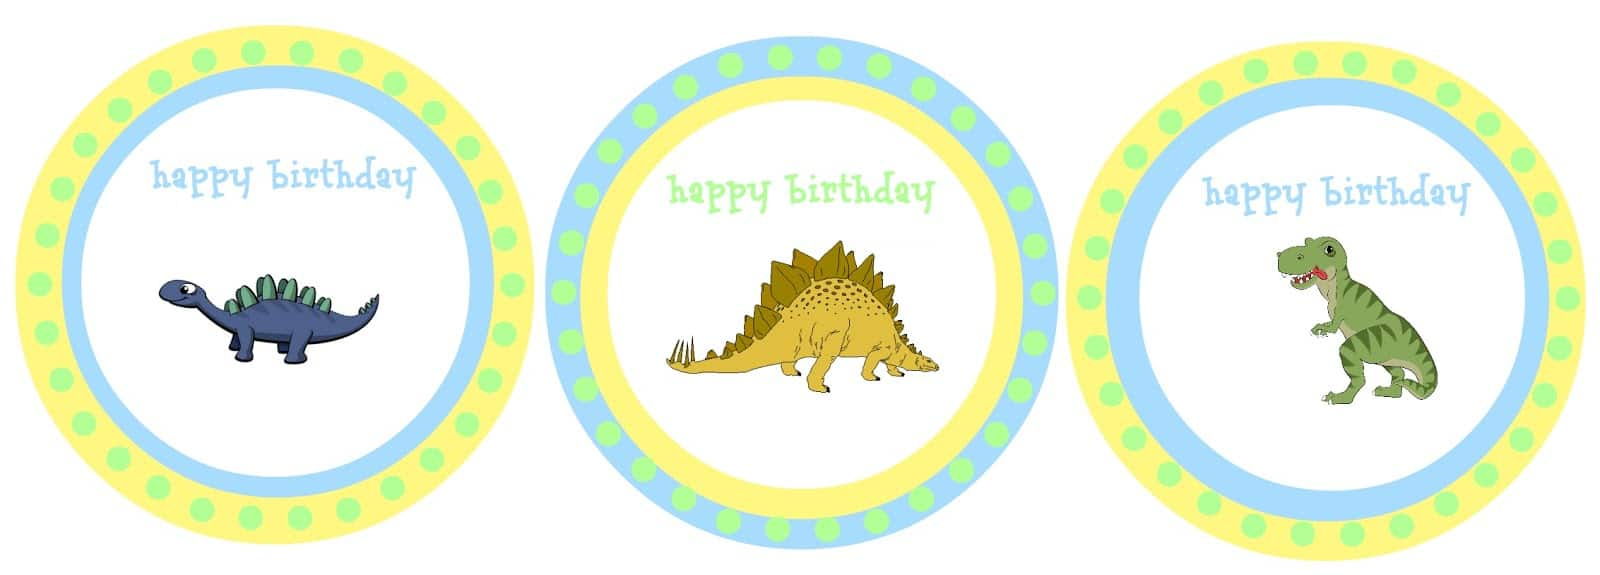 Party with dinosaurs - Dinosaur themed birthday party